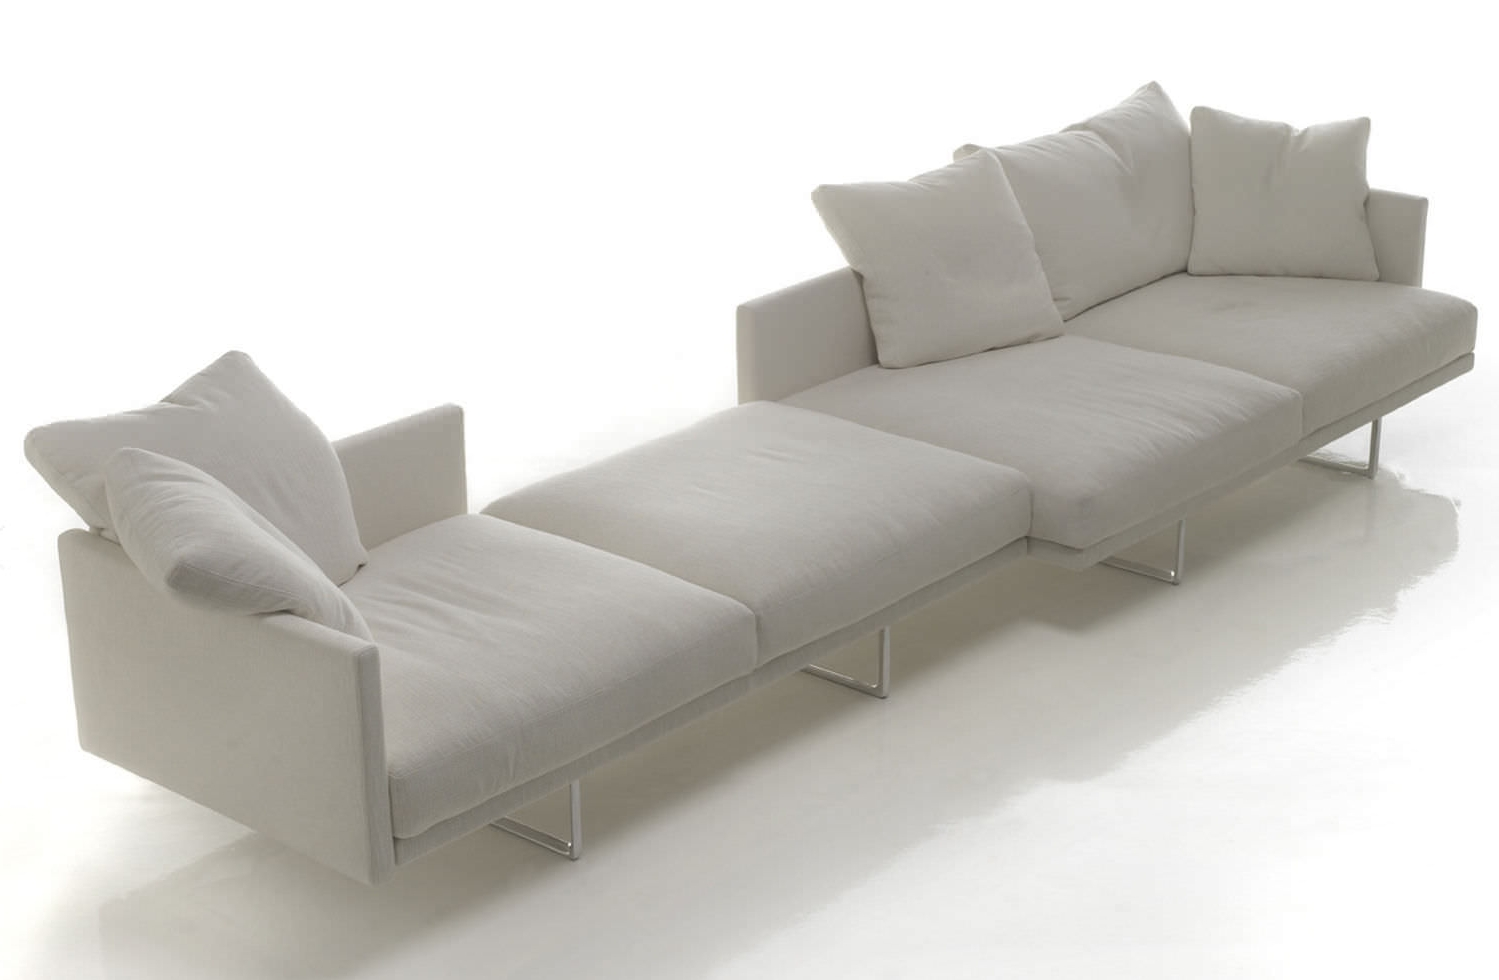 Newest Stunning Design Ideas Of Modular Sofas For Small Spaces (View 11 of 20)